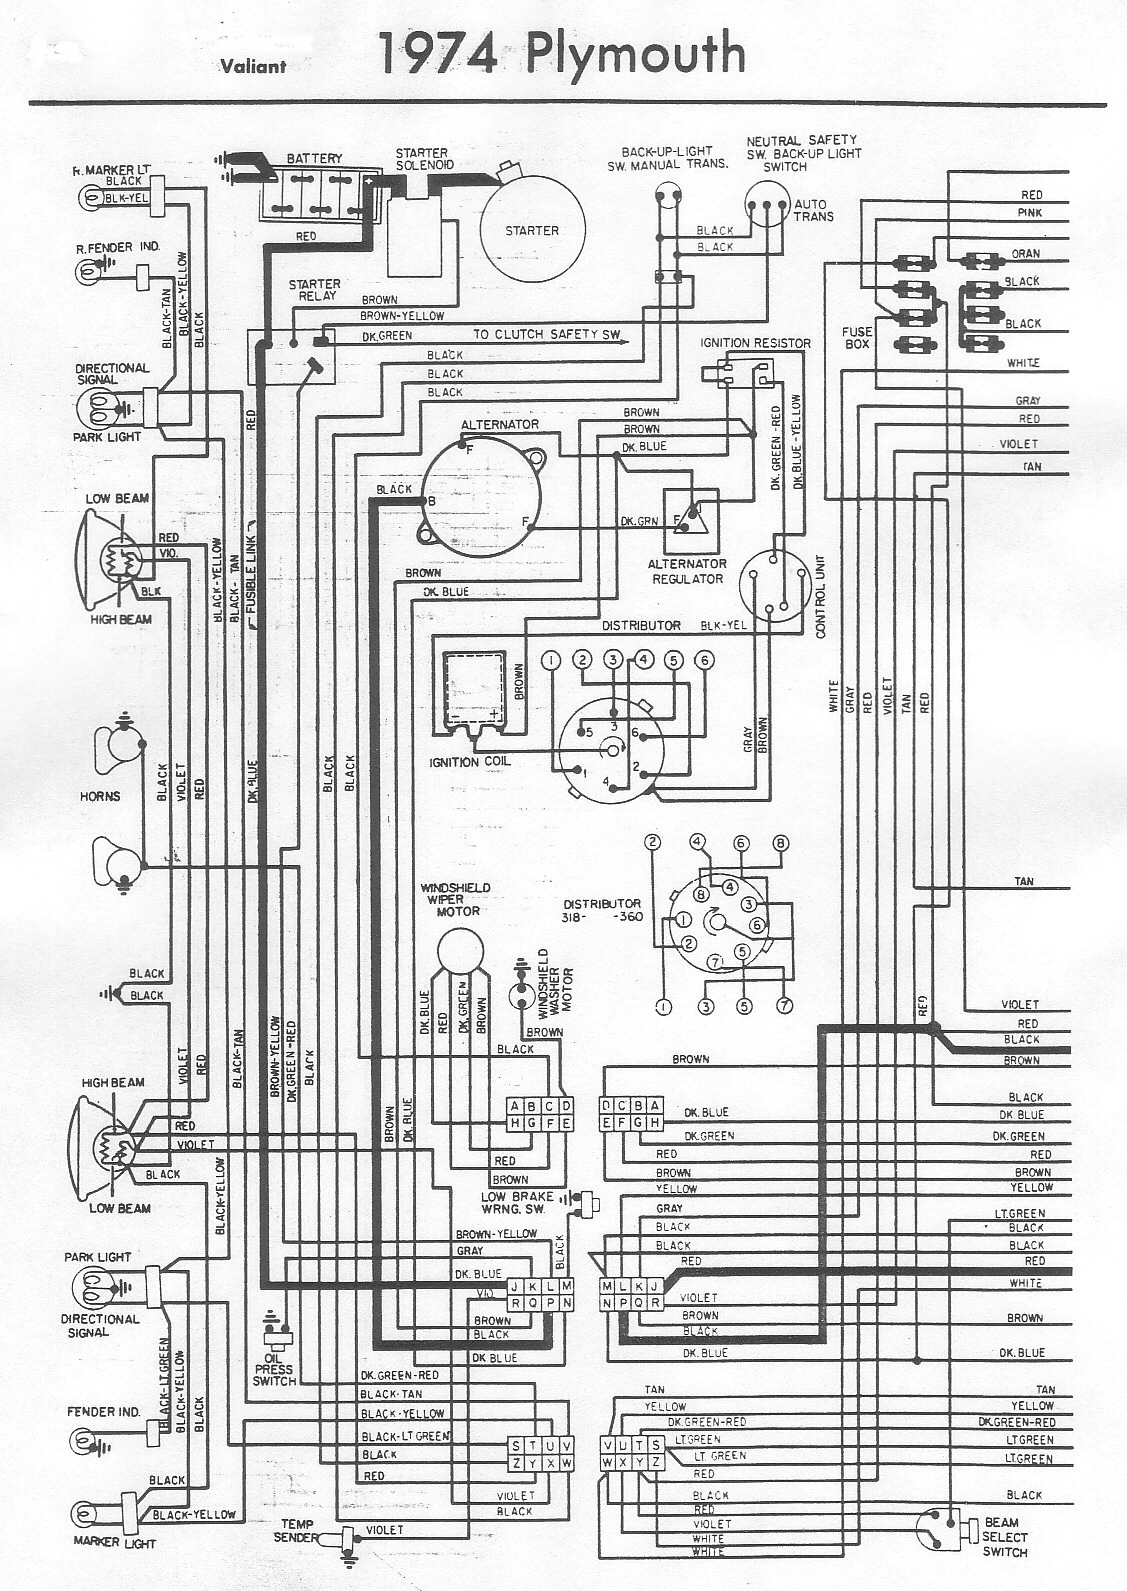 70 Dodge Challenger Wiring Diagram Free Download Library Hellcat Engine 67 Dart Image For